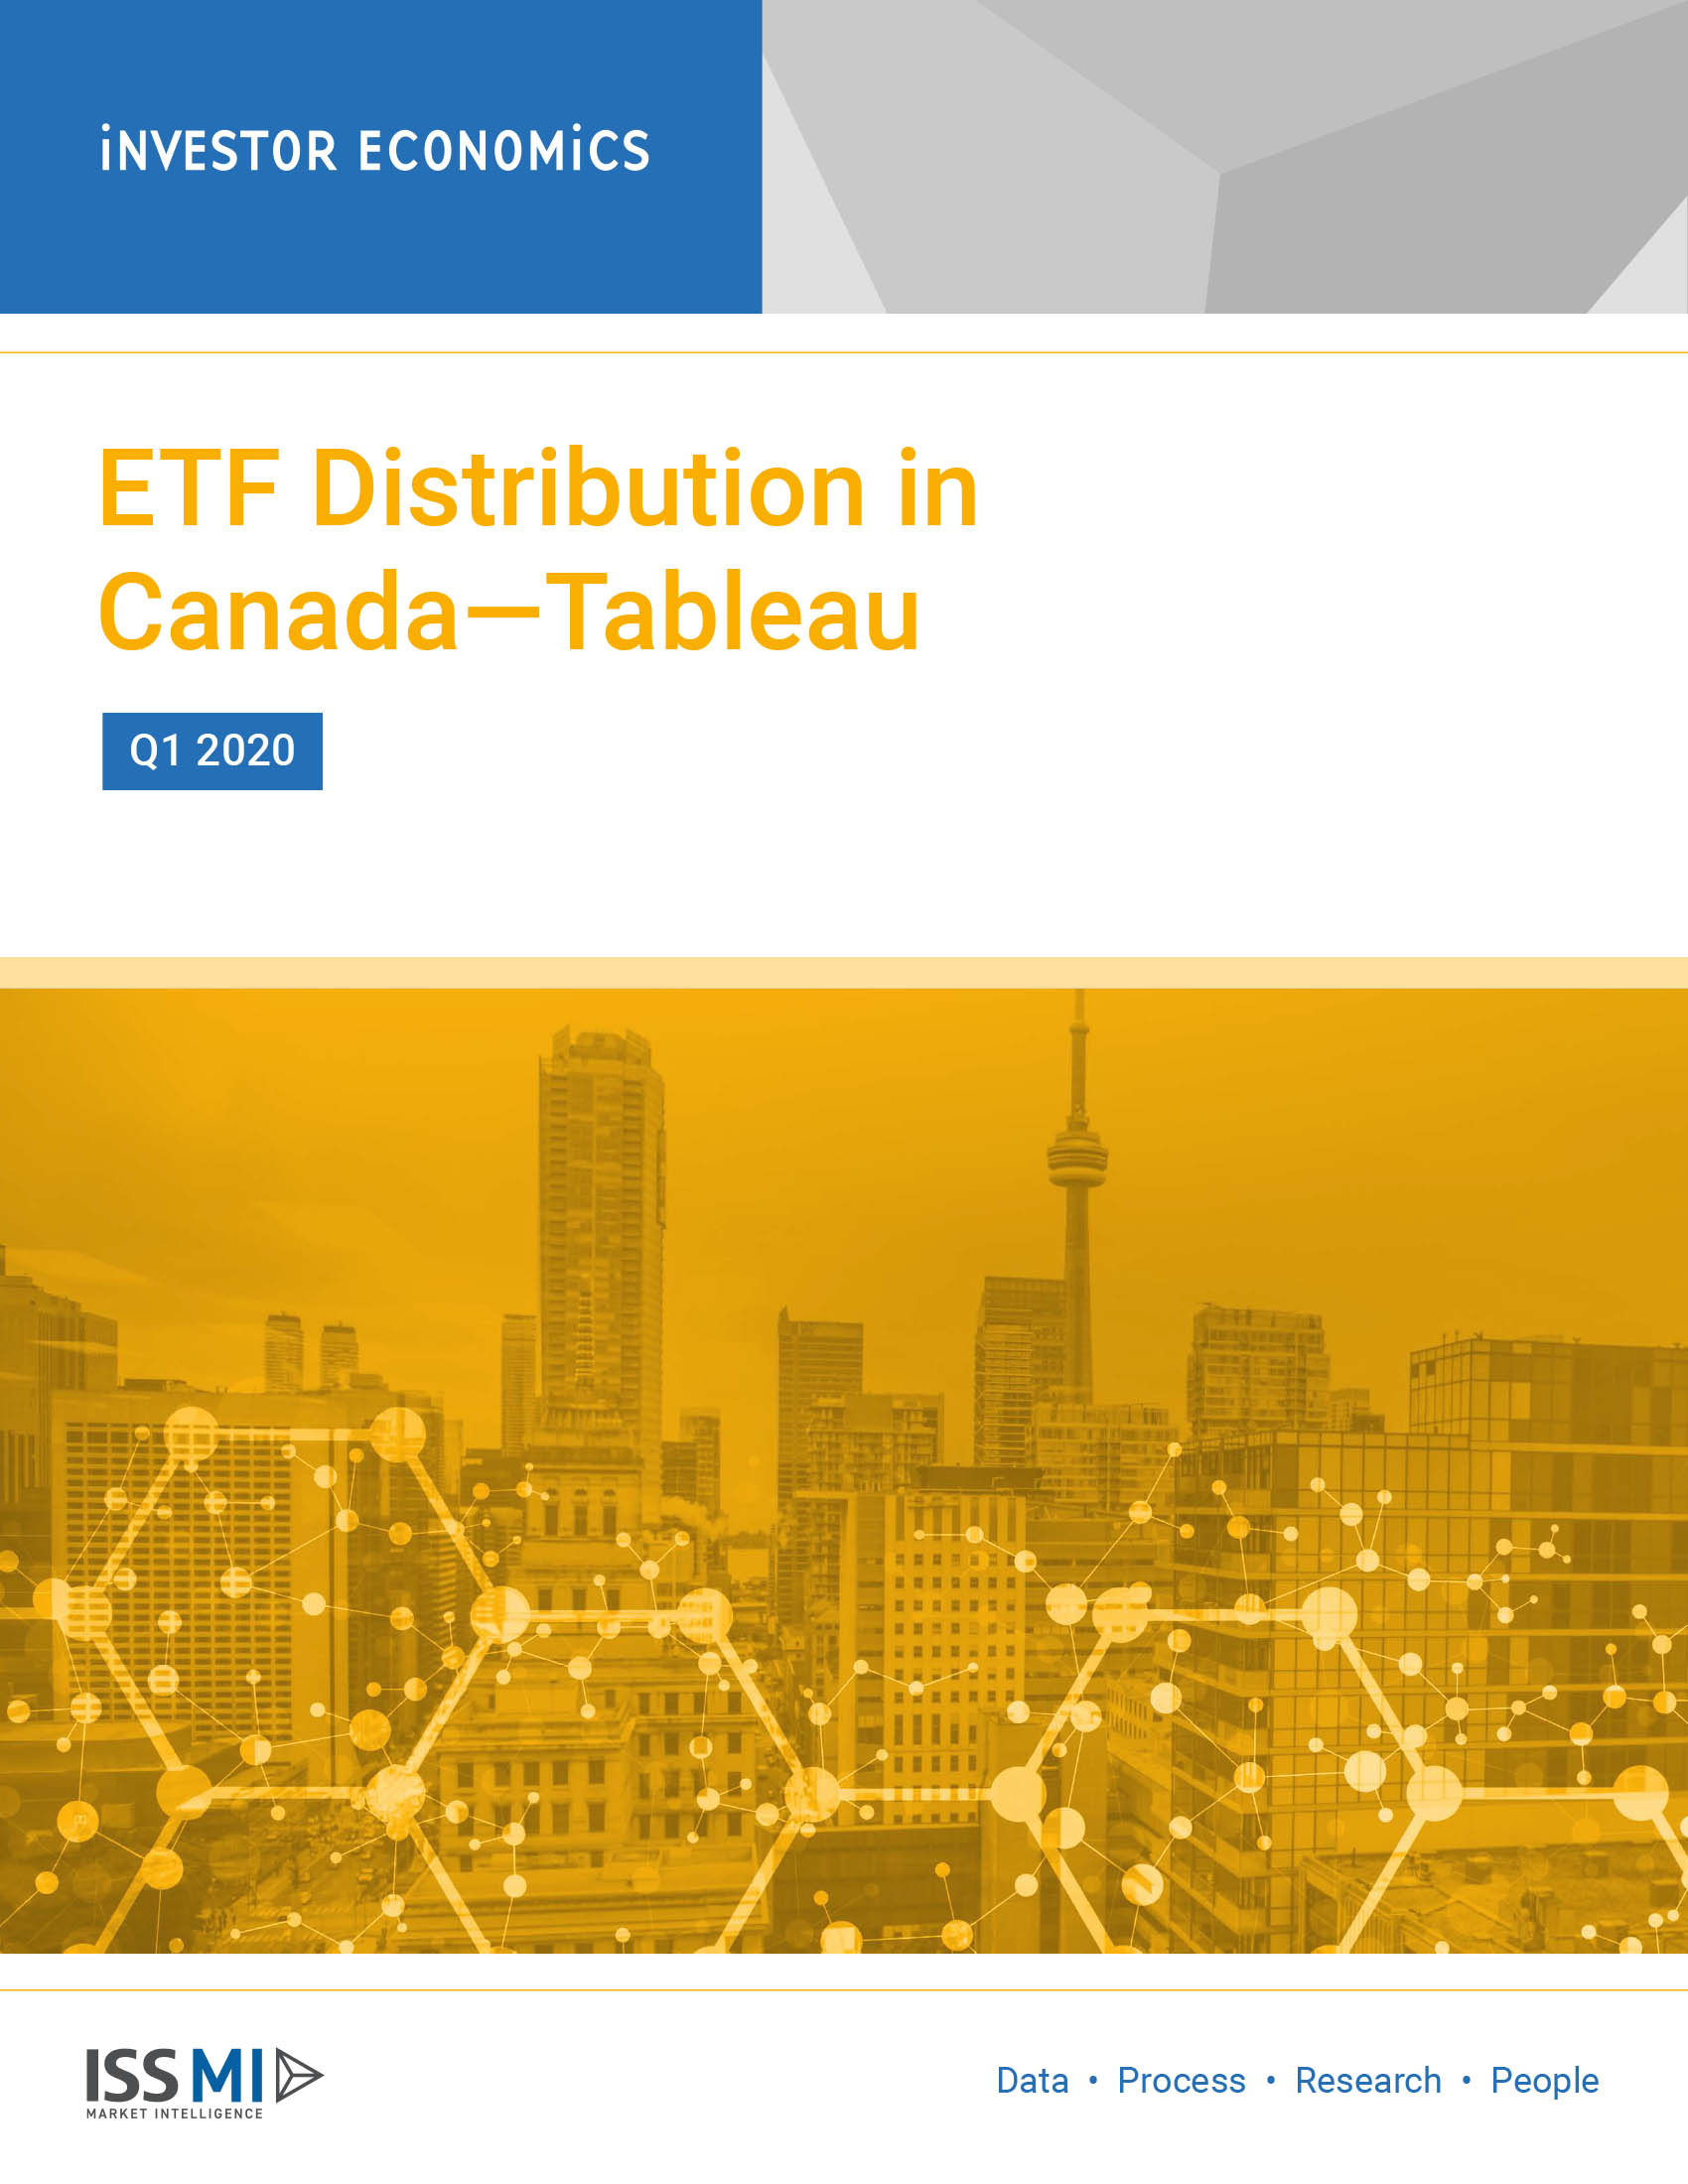 ETF Distribution in Canada—Tableau Q1 2020